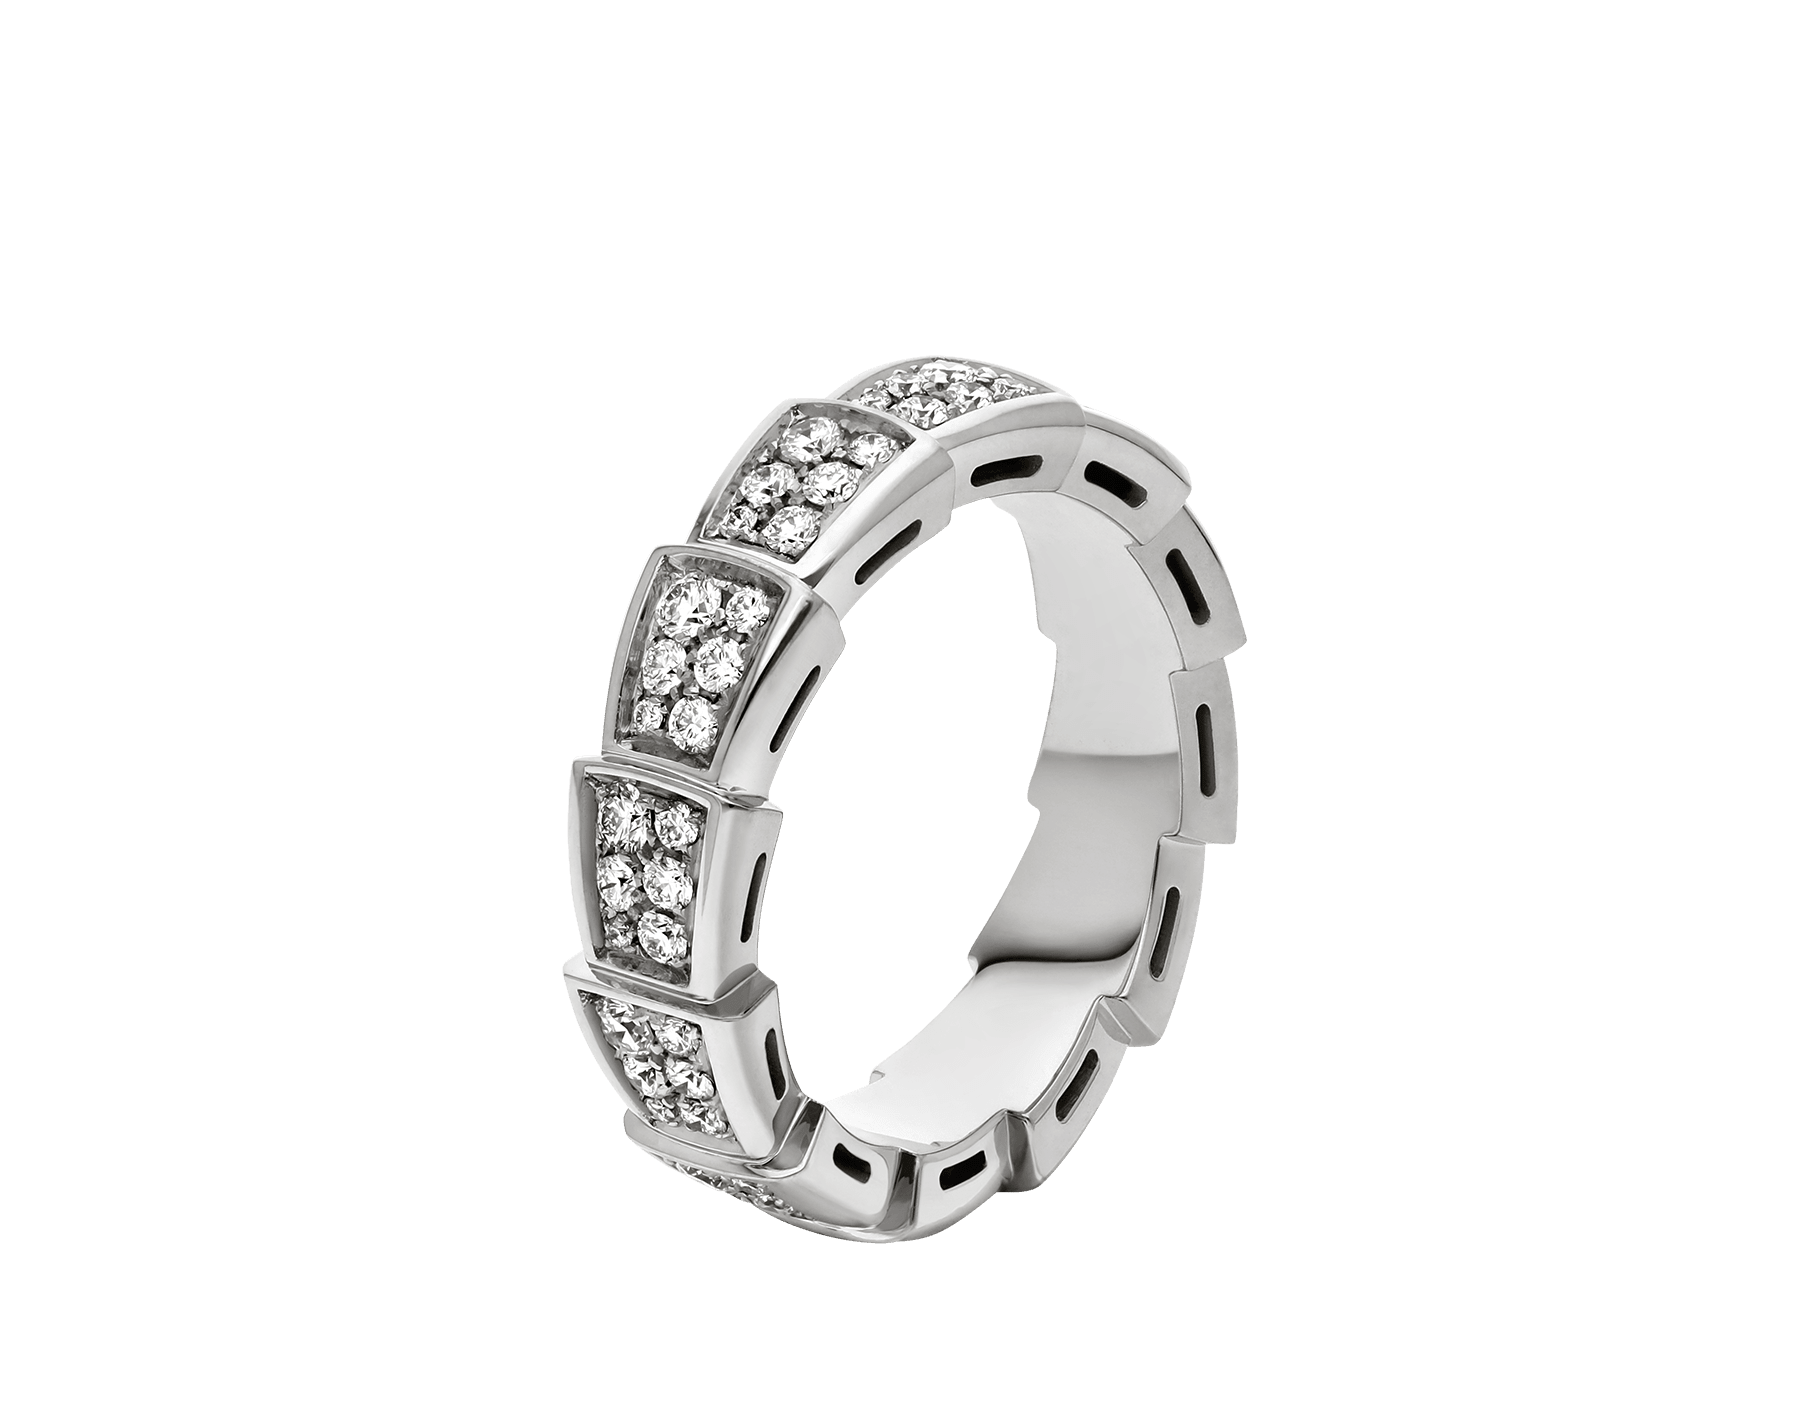 Serpenti Viper band ring in 18 kt white gold, set with full pavé diamonds. AN857940 image 1